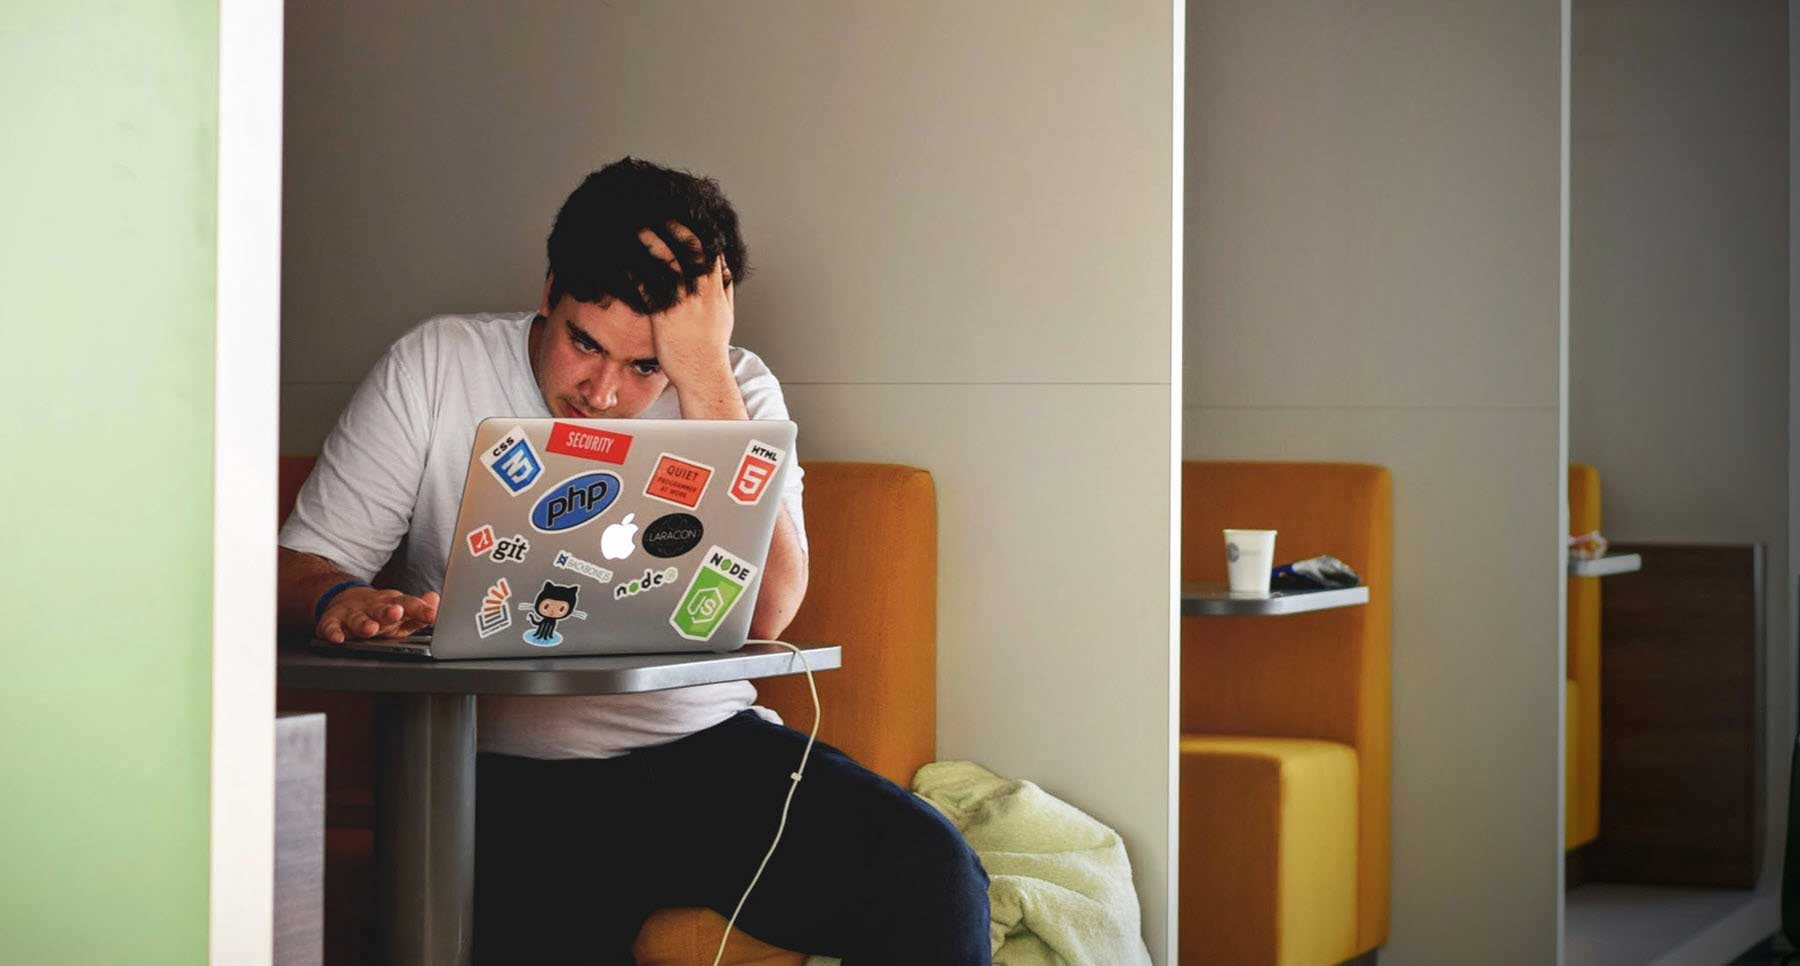 guy on computer wondering how he can manage college stress